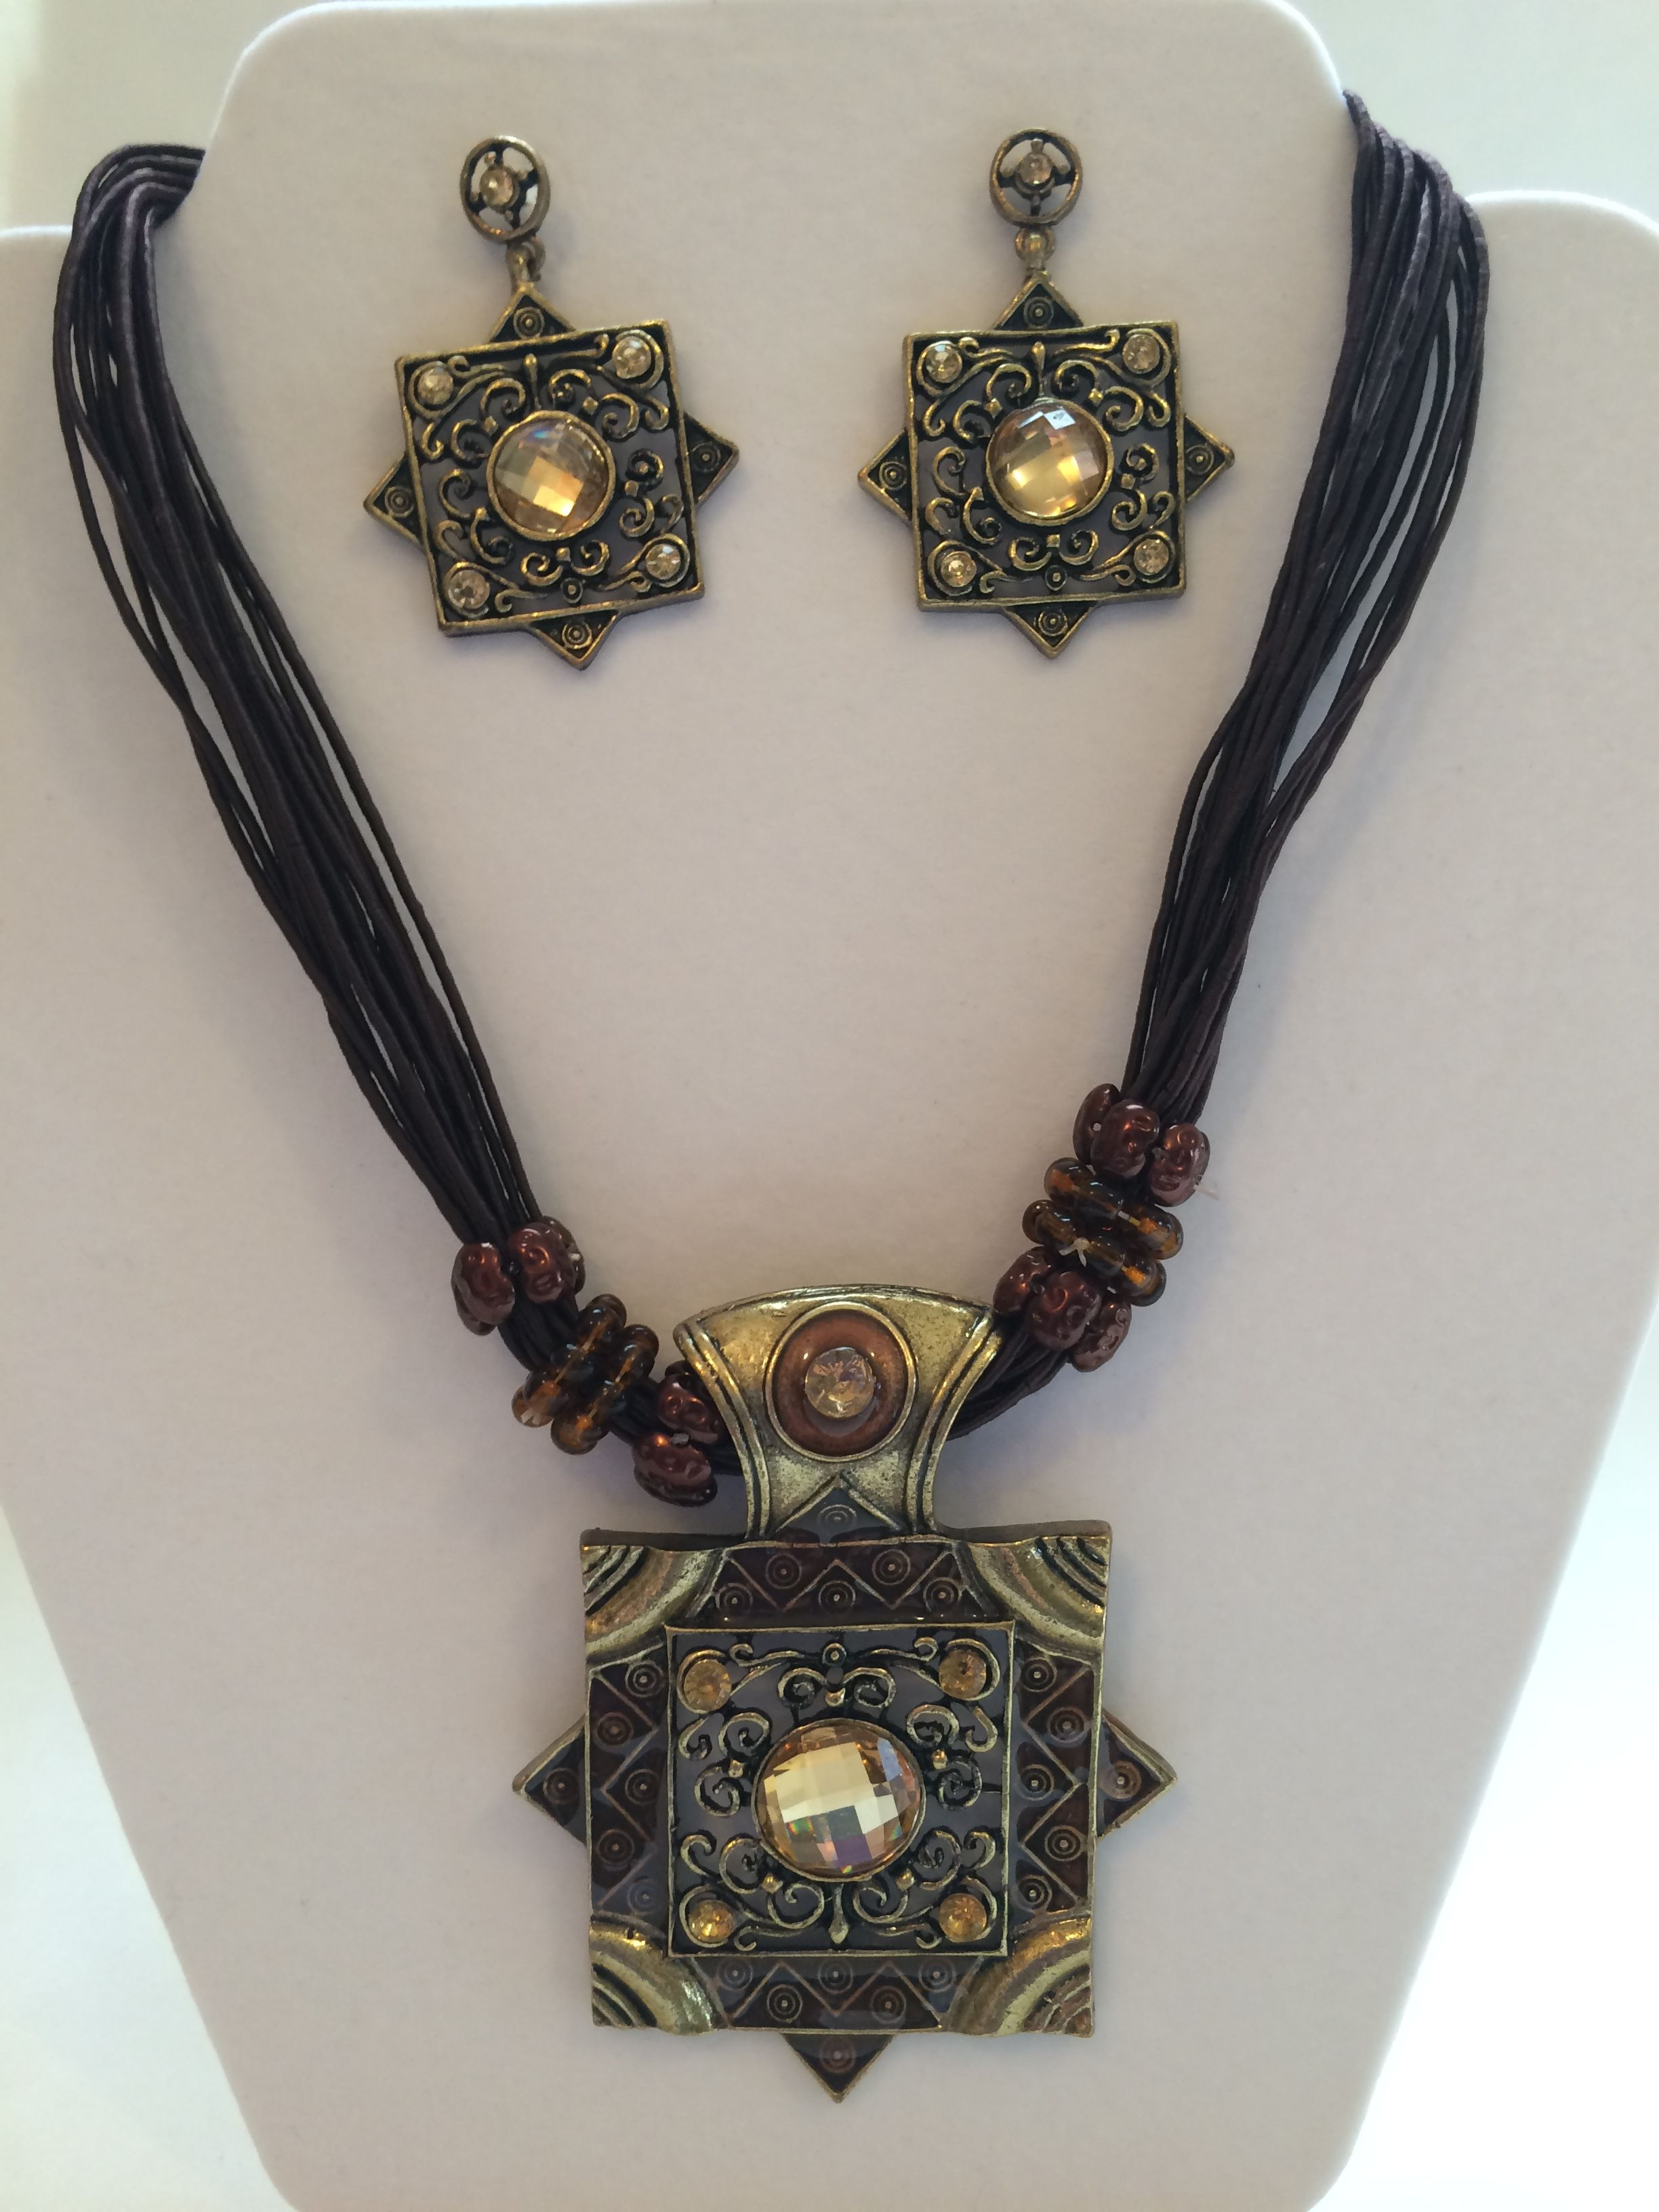 Antique gold finished double square pendant necklace and earring set